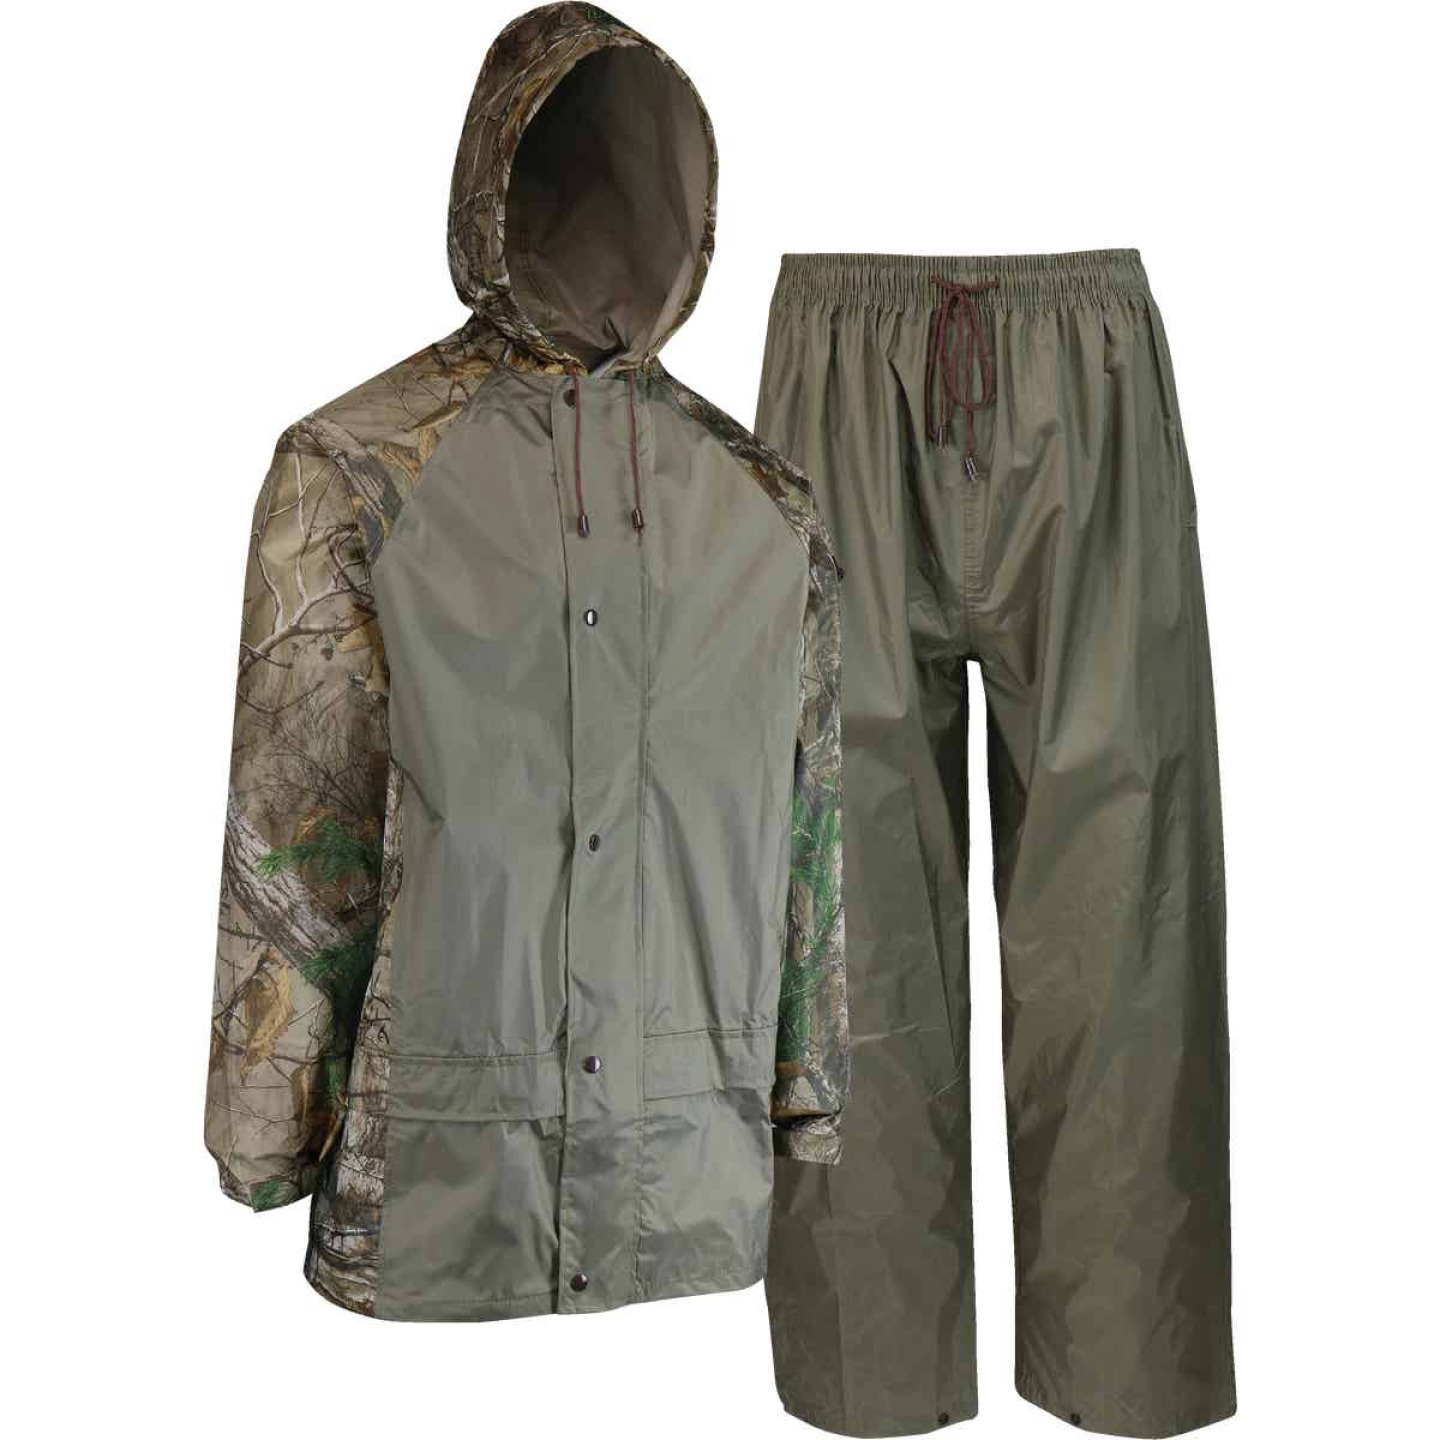 West Chester 3XL 2-Piece RealTree Camo Polyester Rain Suit Image 1